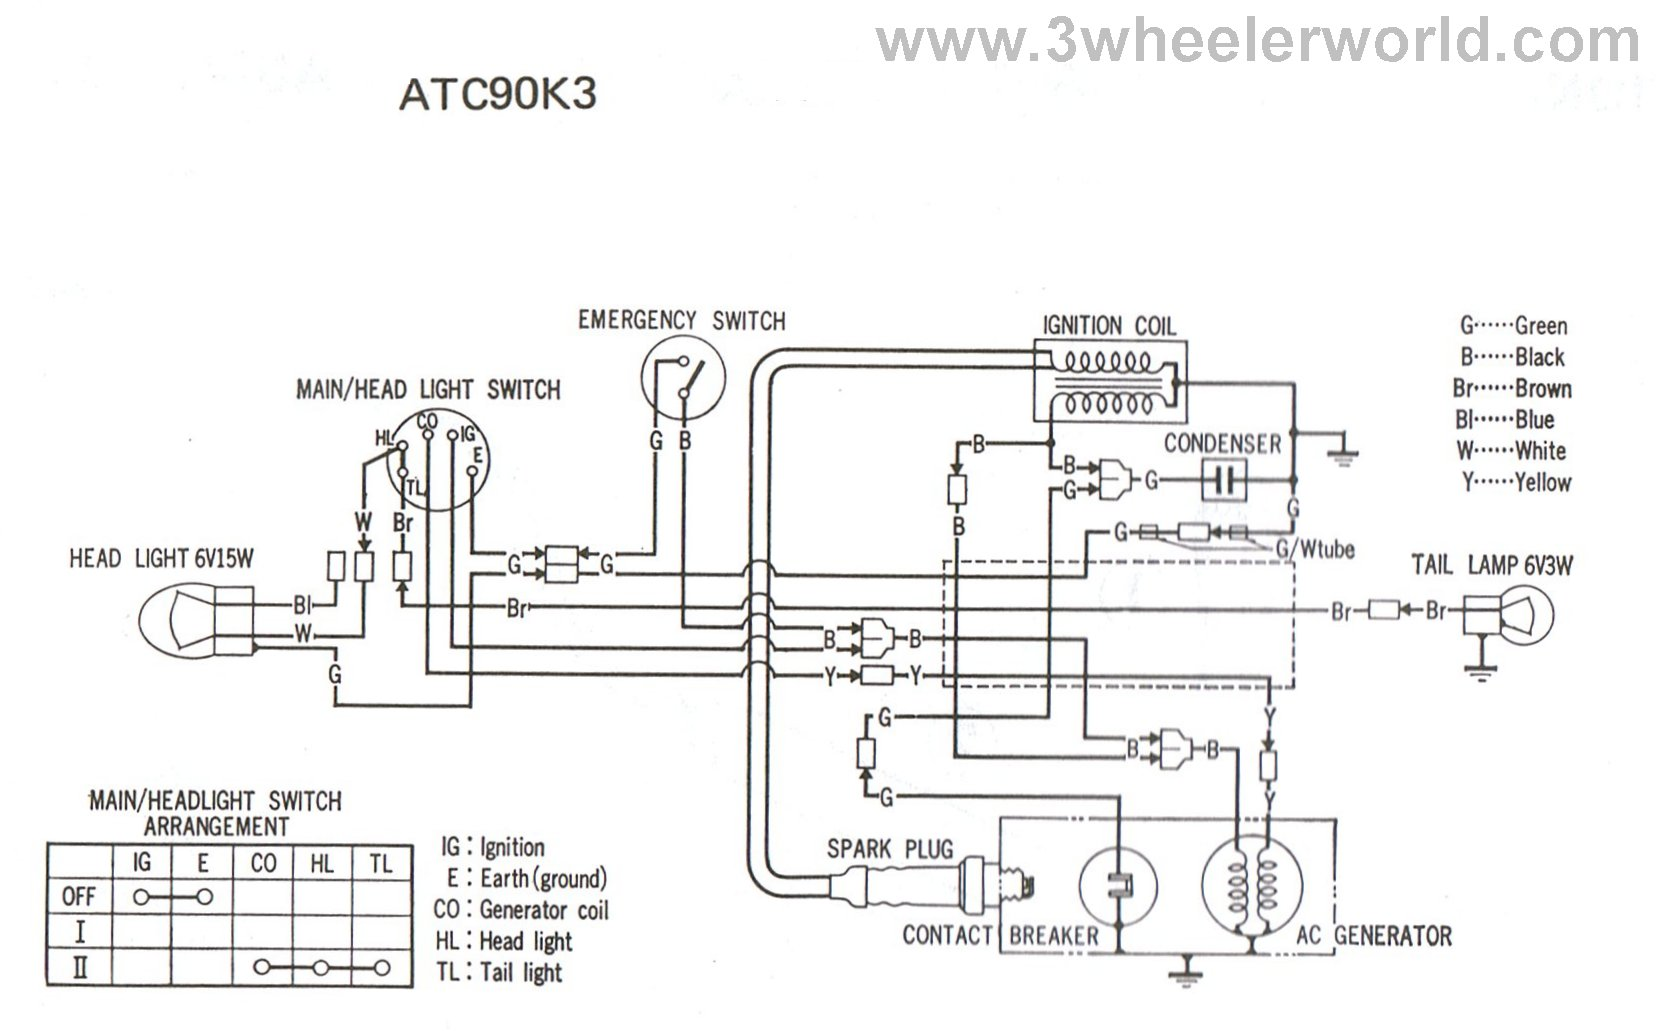 ATC90K3HM wiring diagram polaris xplorer 300 the wiring diagram 1995 polaris magnum 425 wiring diagram at crackthecode.co